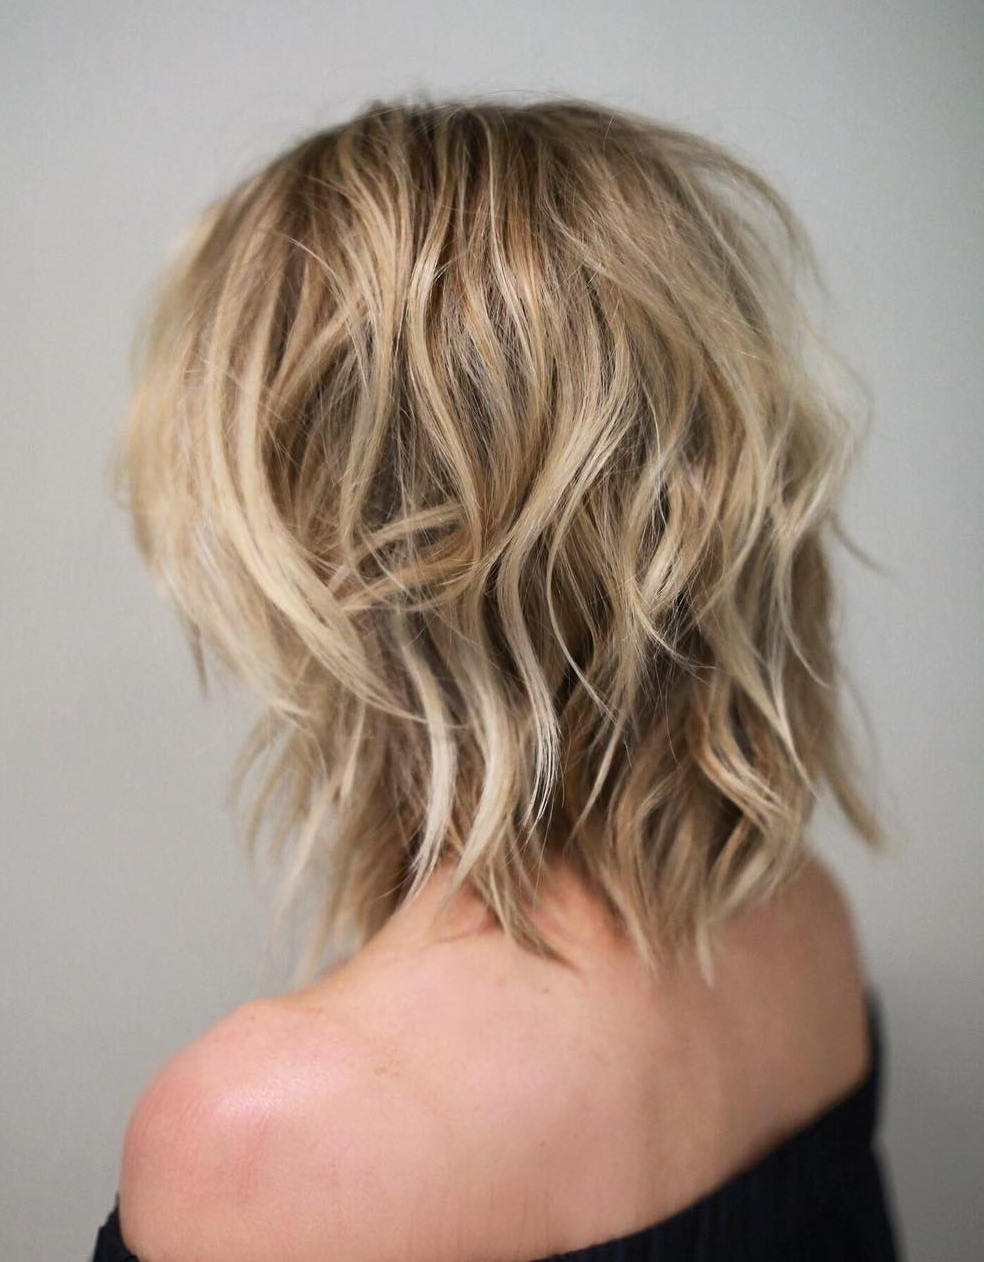 Most Recent Medium Shaggy Hairstyles With Bangs In 50 Best Variations Of A Medium Shag Haircut For Your Distinctive Style (View 11 of 15)